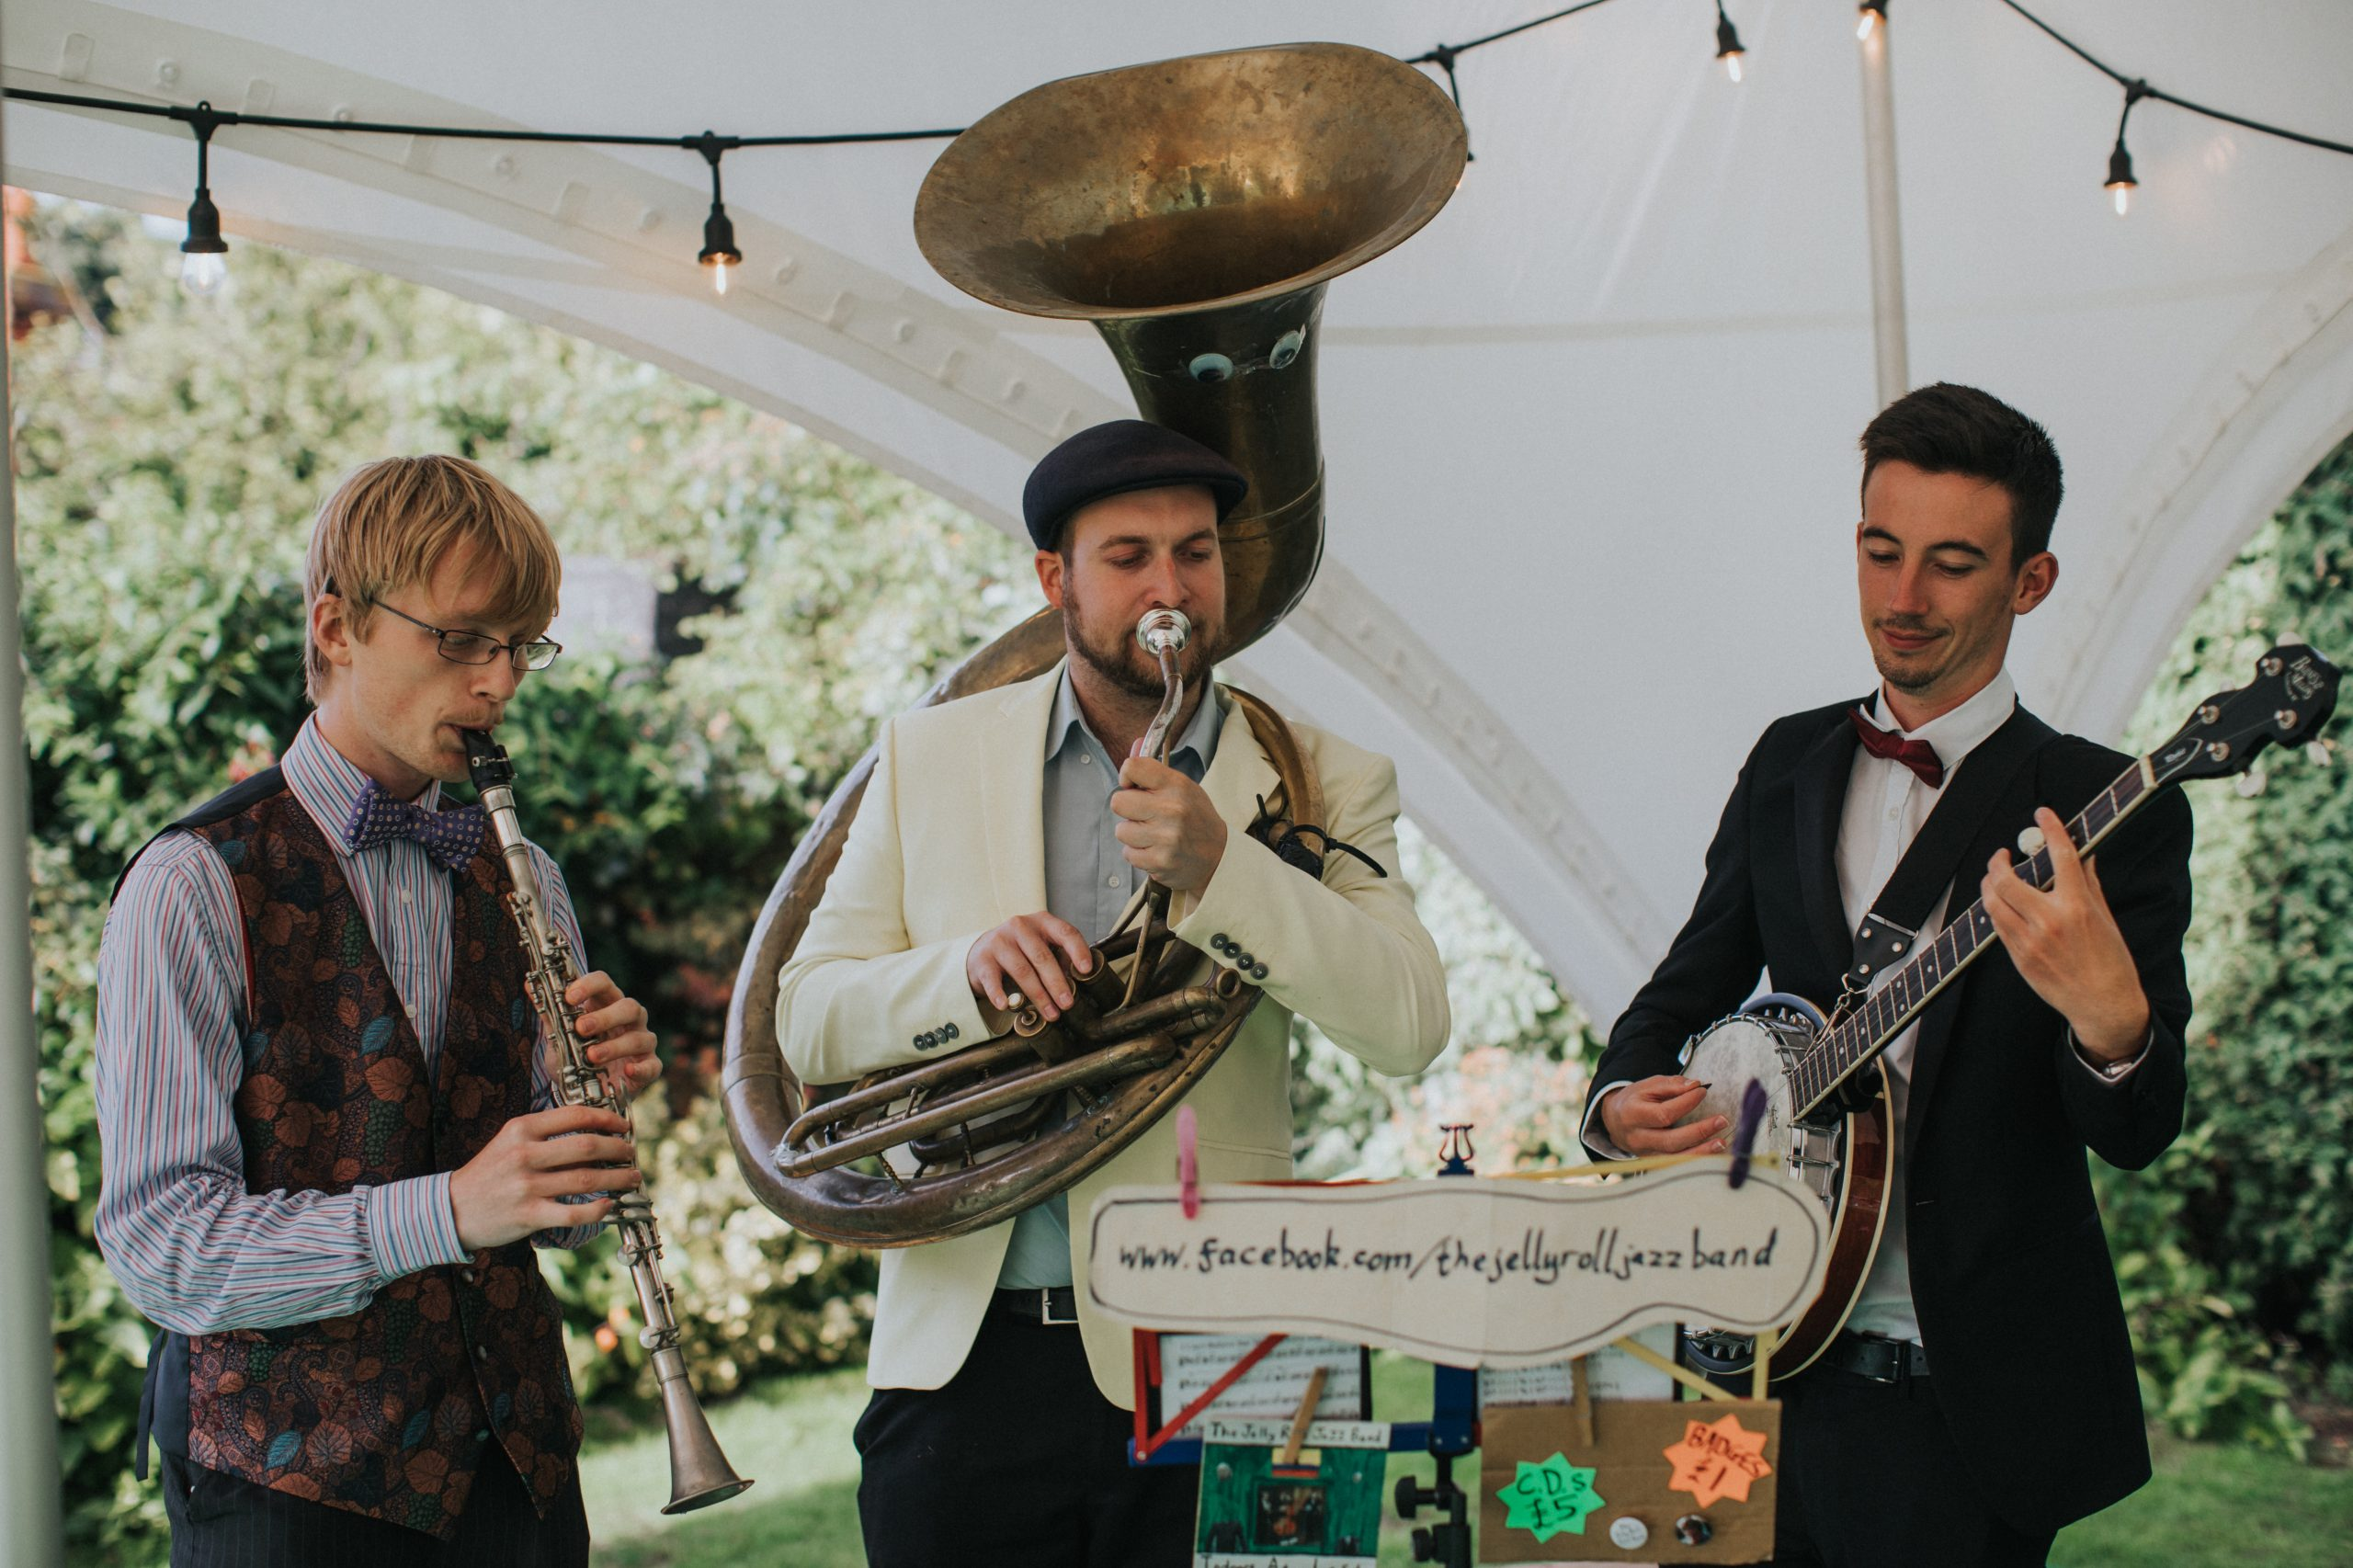 The Jelly Roll Jazz Band performing at a wedding reception in Rous Lench, August 2018 (3)